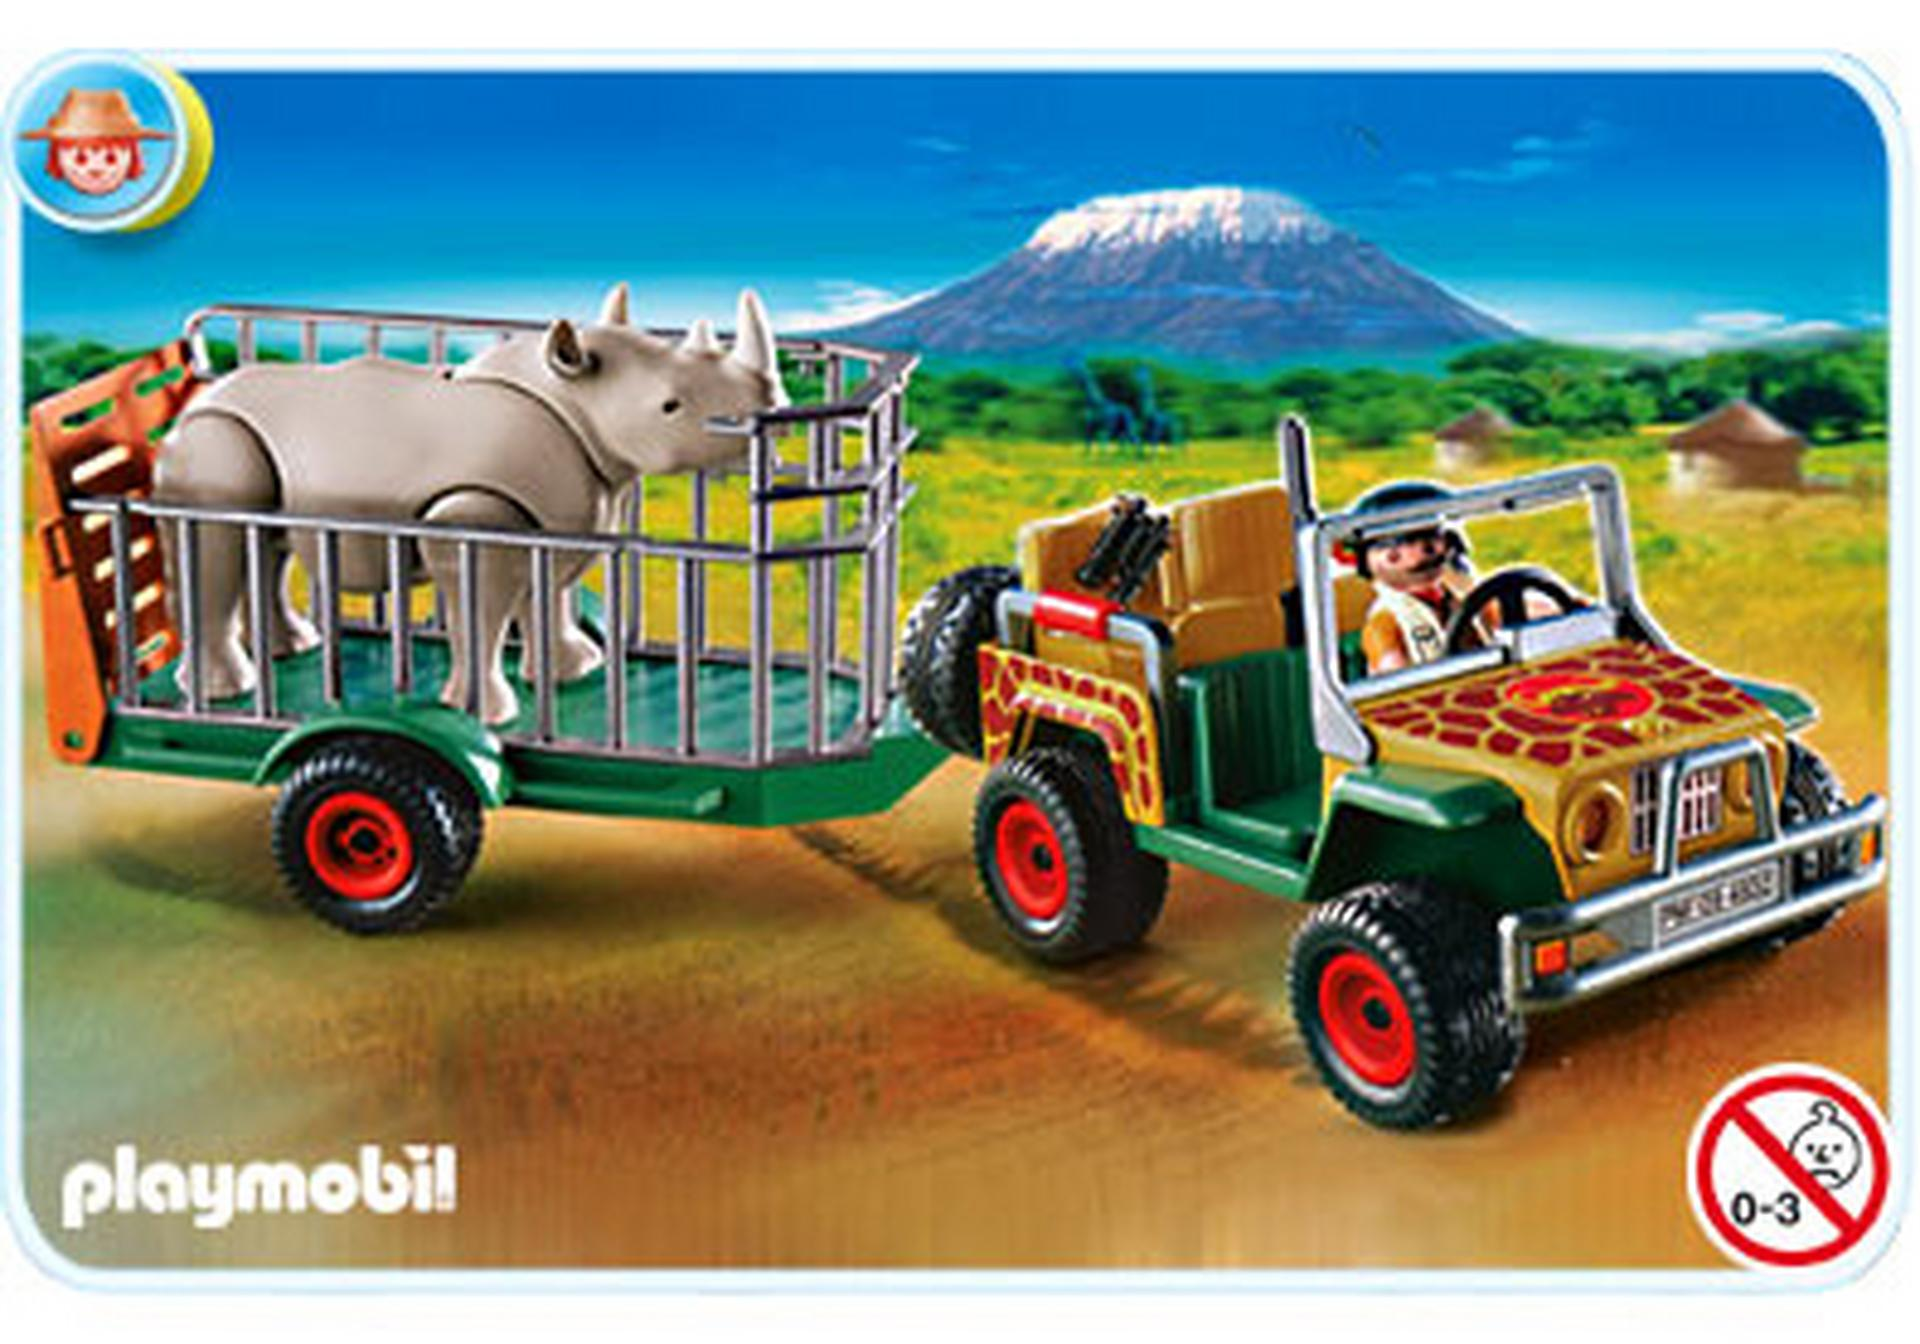 rangerfahrzeug mit nashorn 4832 a playmobil deutschland. Black Bedroom Furniture Sets. Home Design Ideas